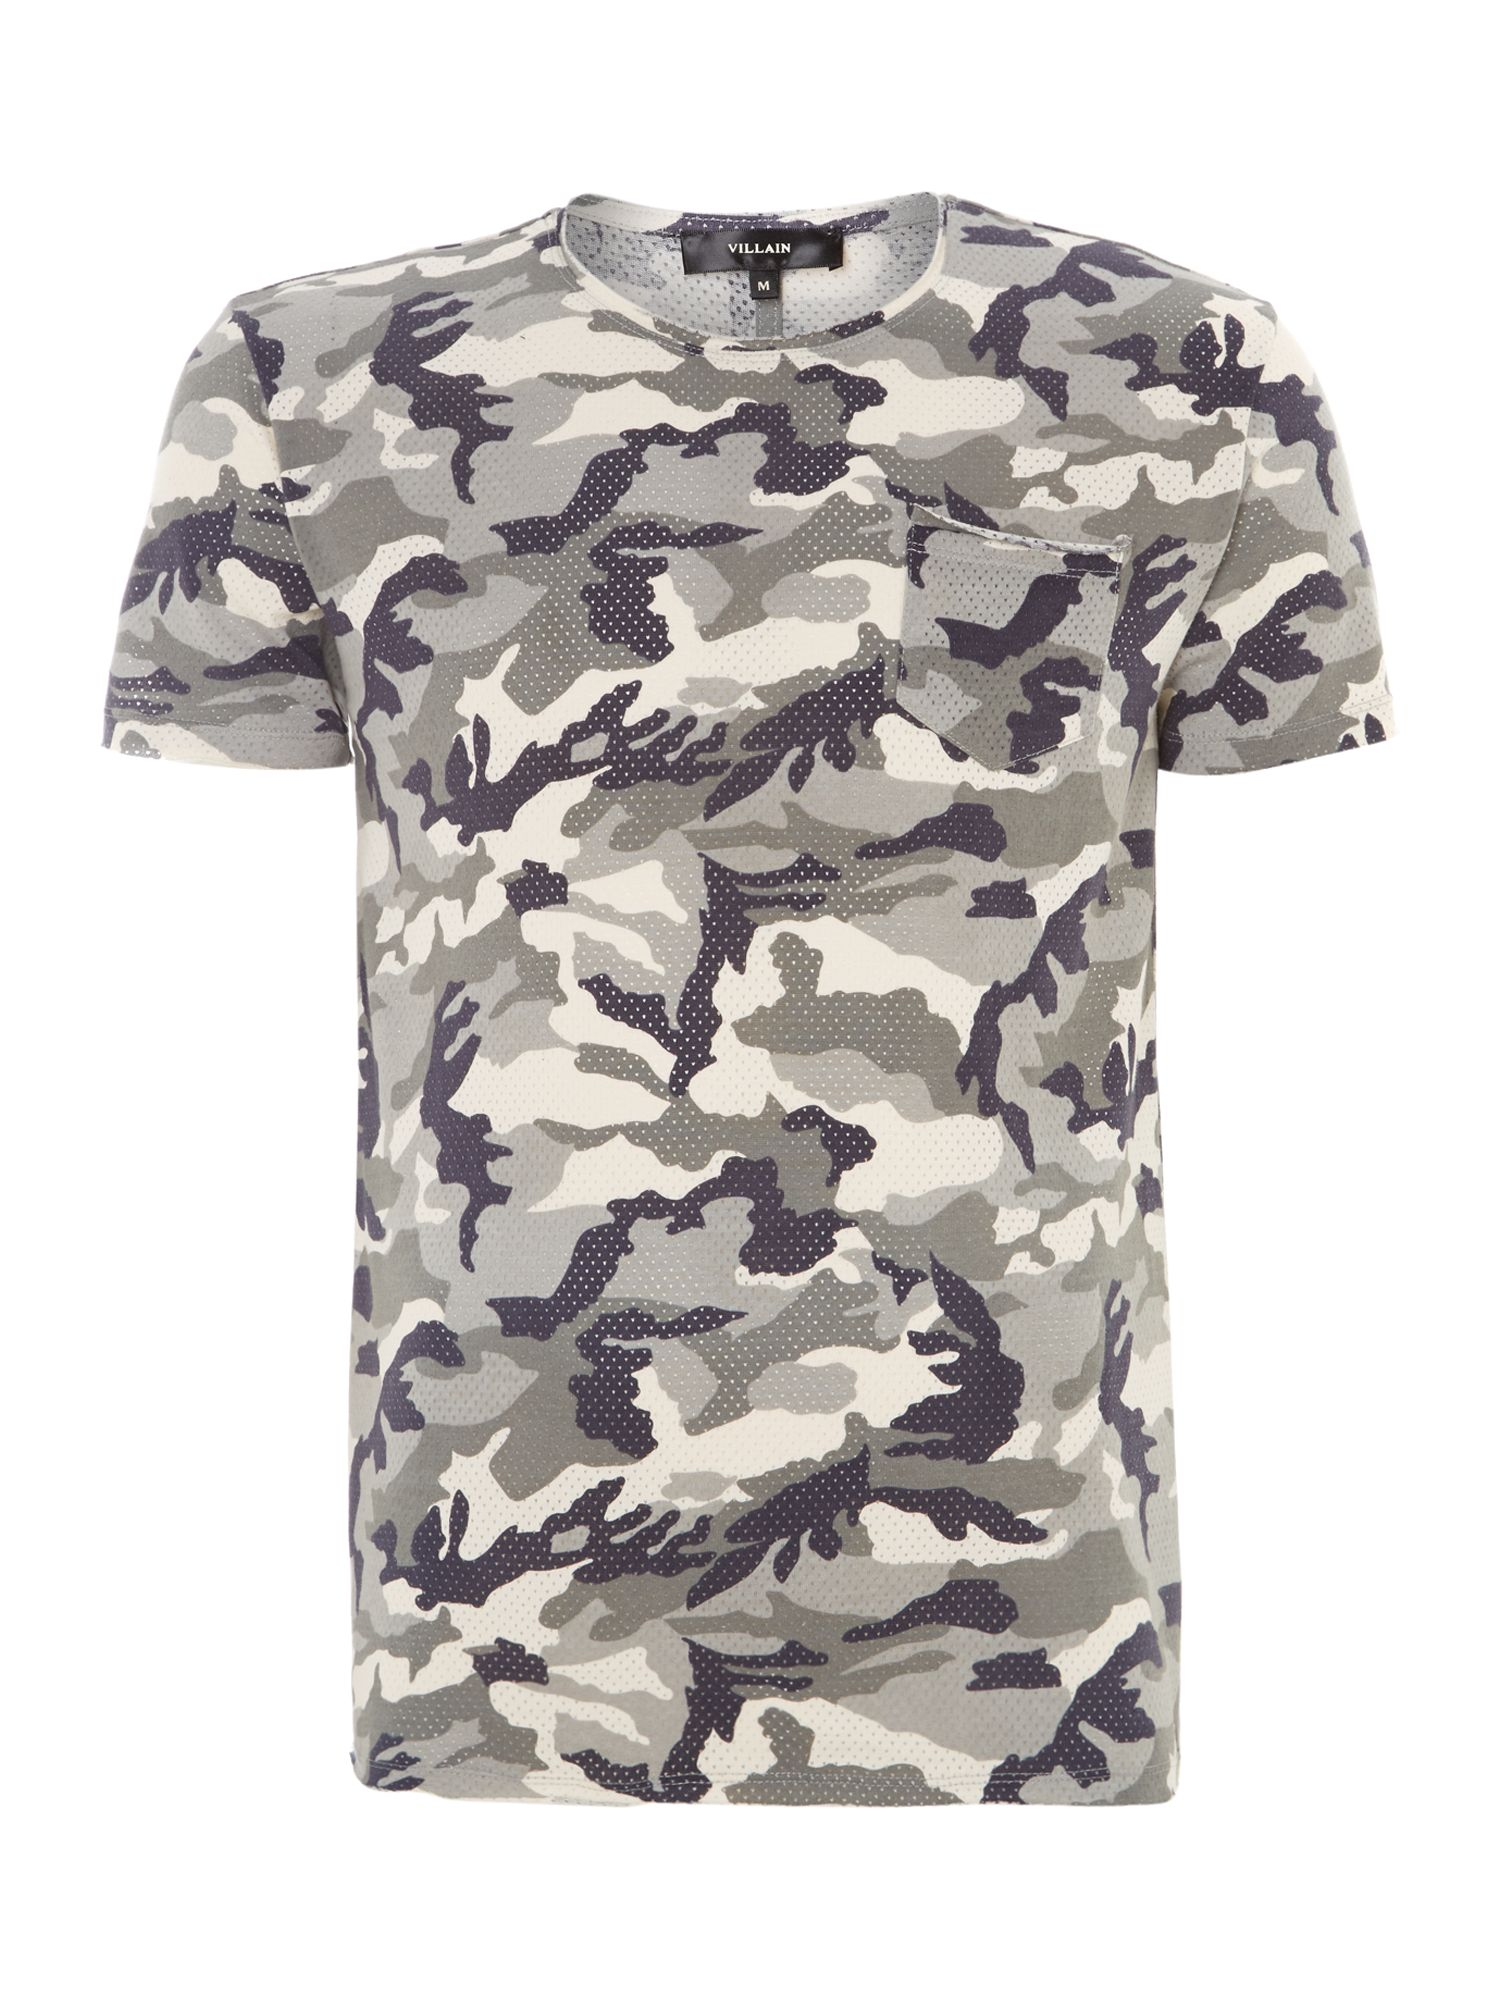 Perforated camo print t shirt